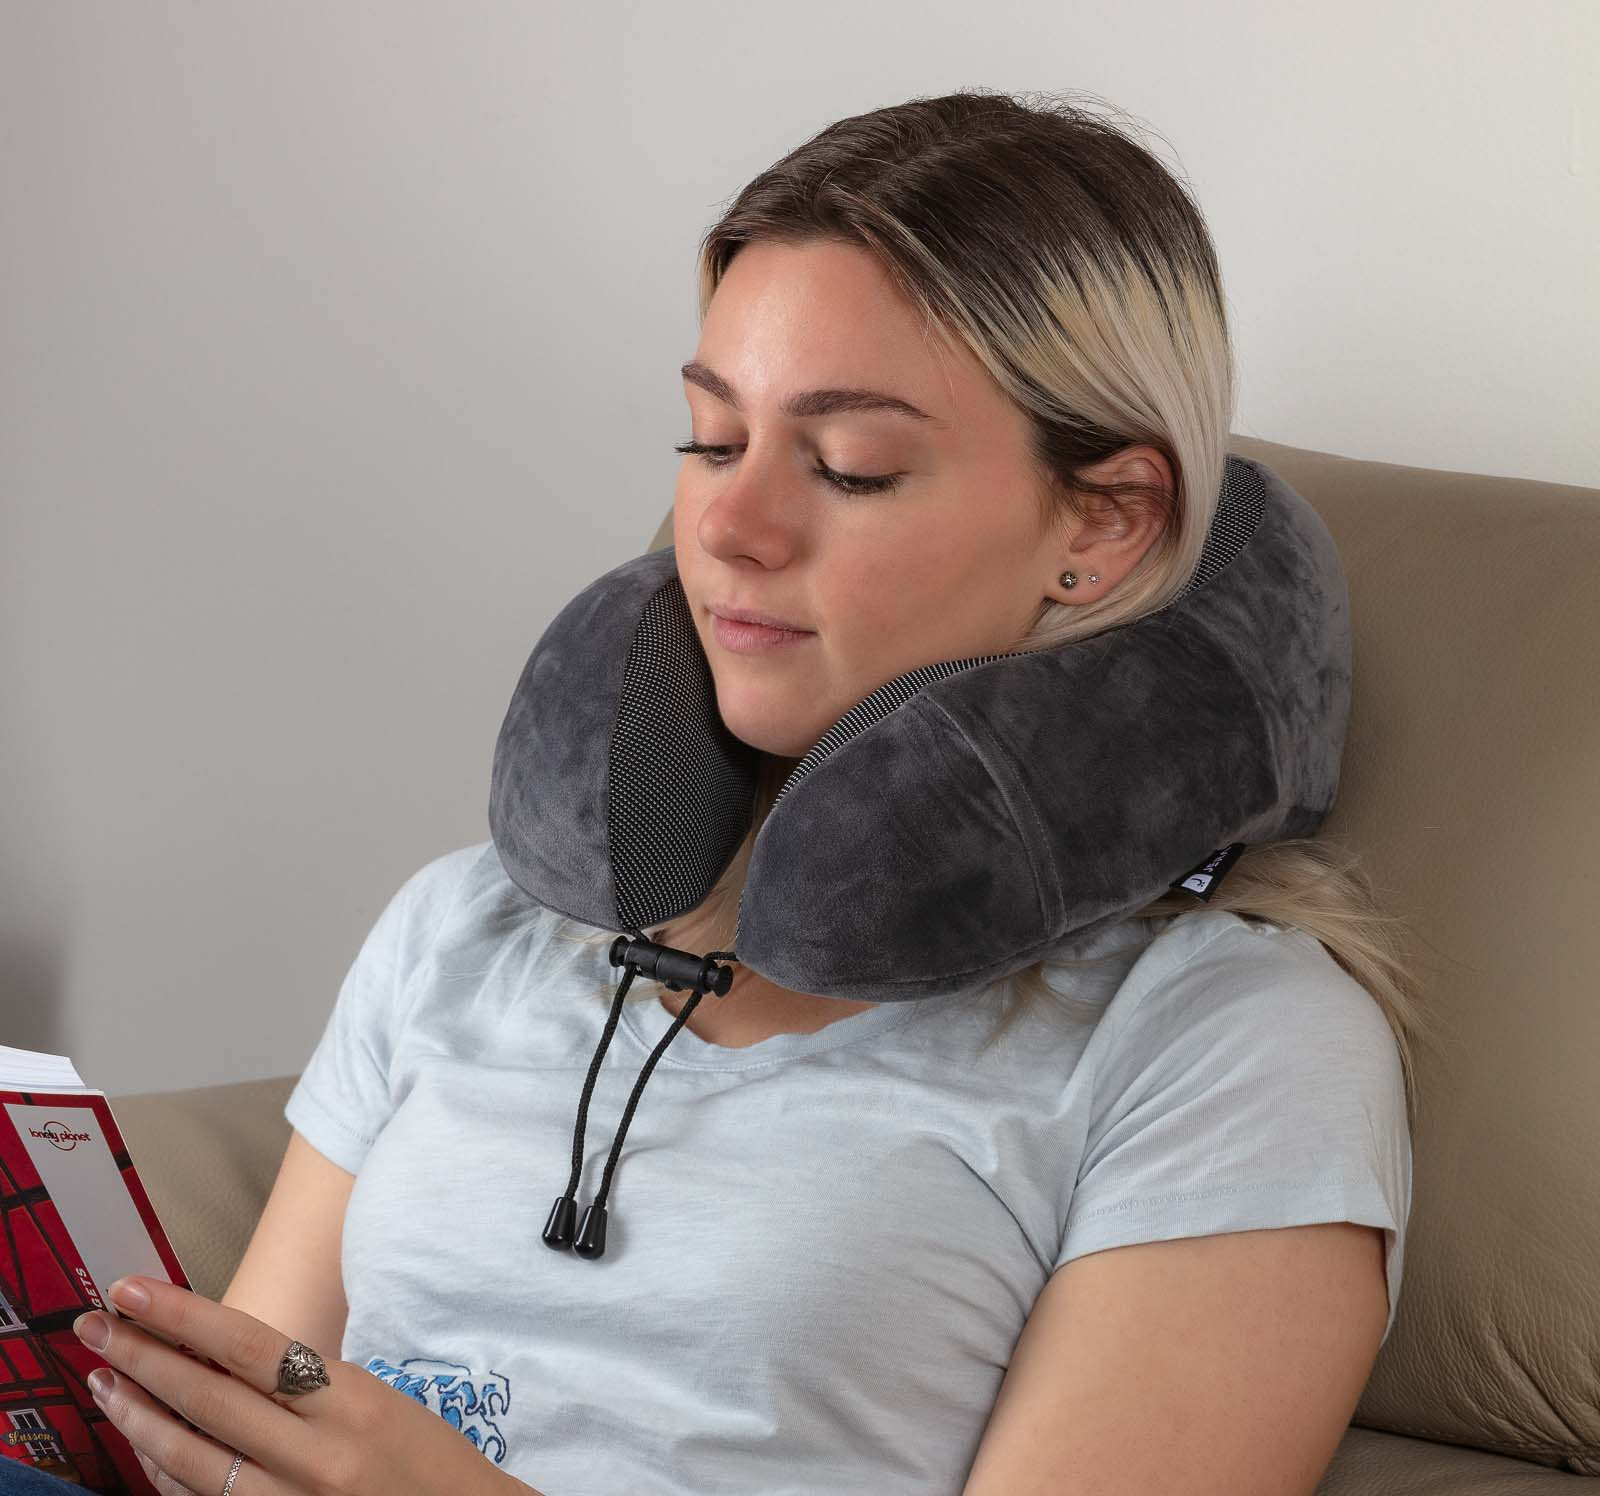 Jera Travel Pillow Product in use by model while reading book - Lifestyle amazon product photography sample